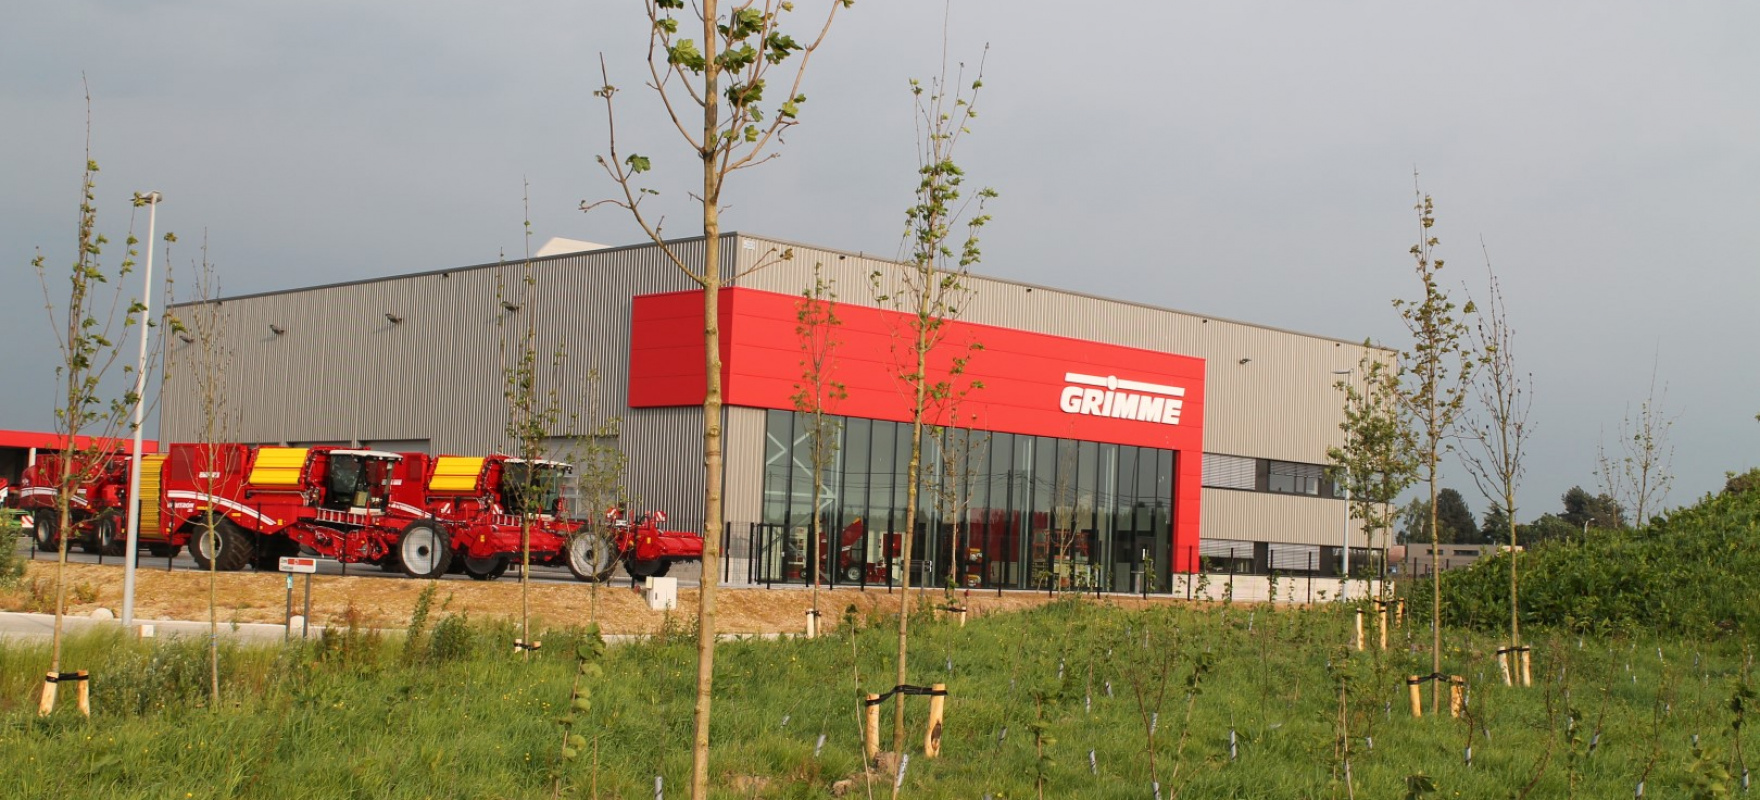 GRIMME Belgium: GRIMME opens new location - News -